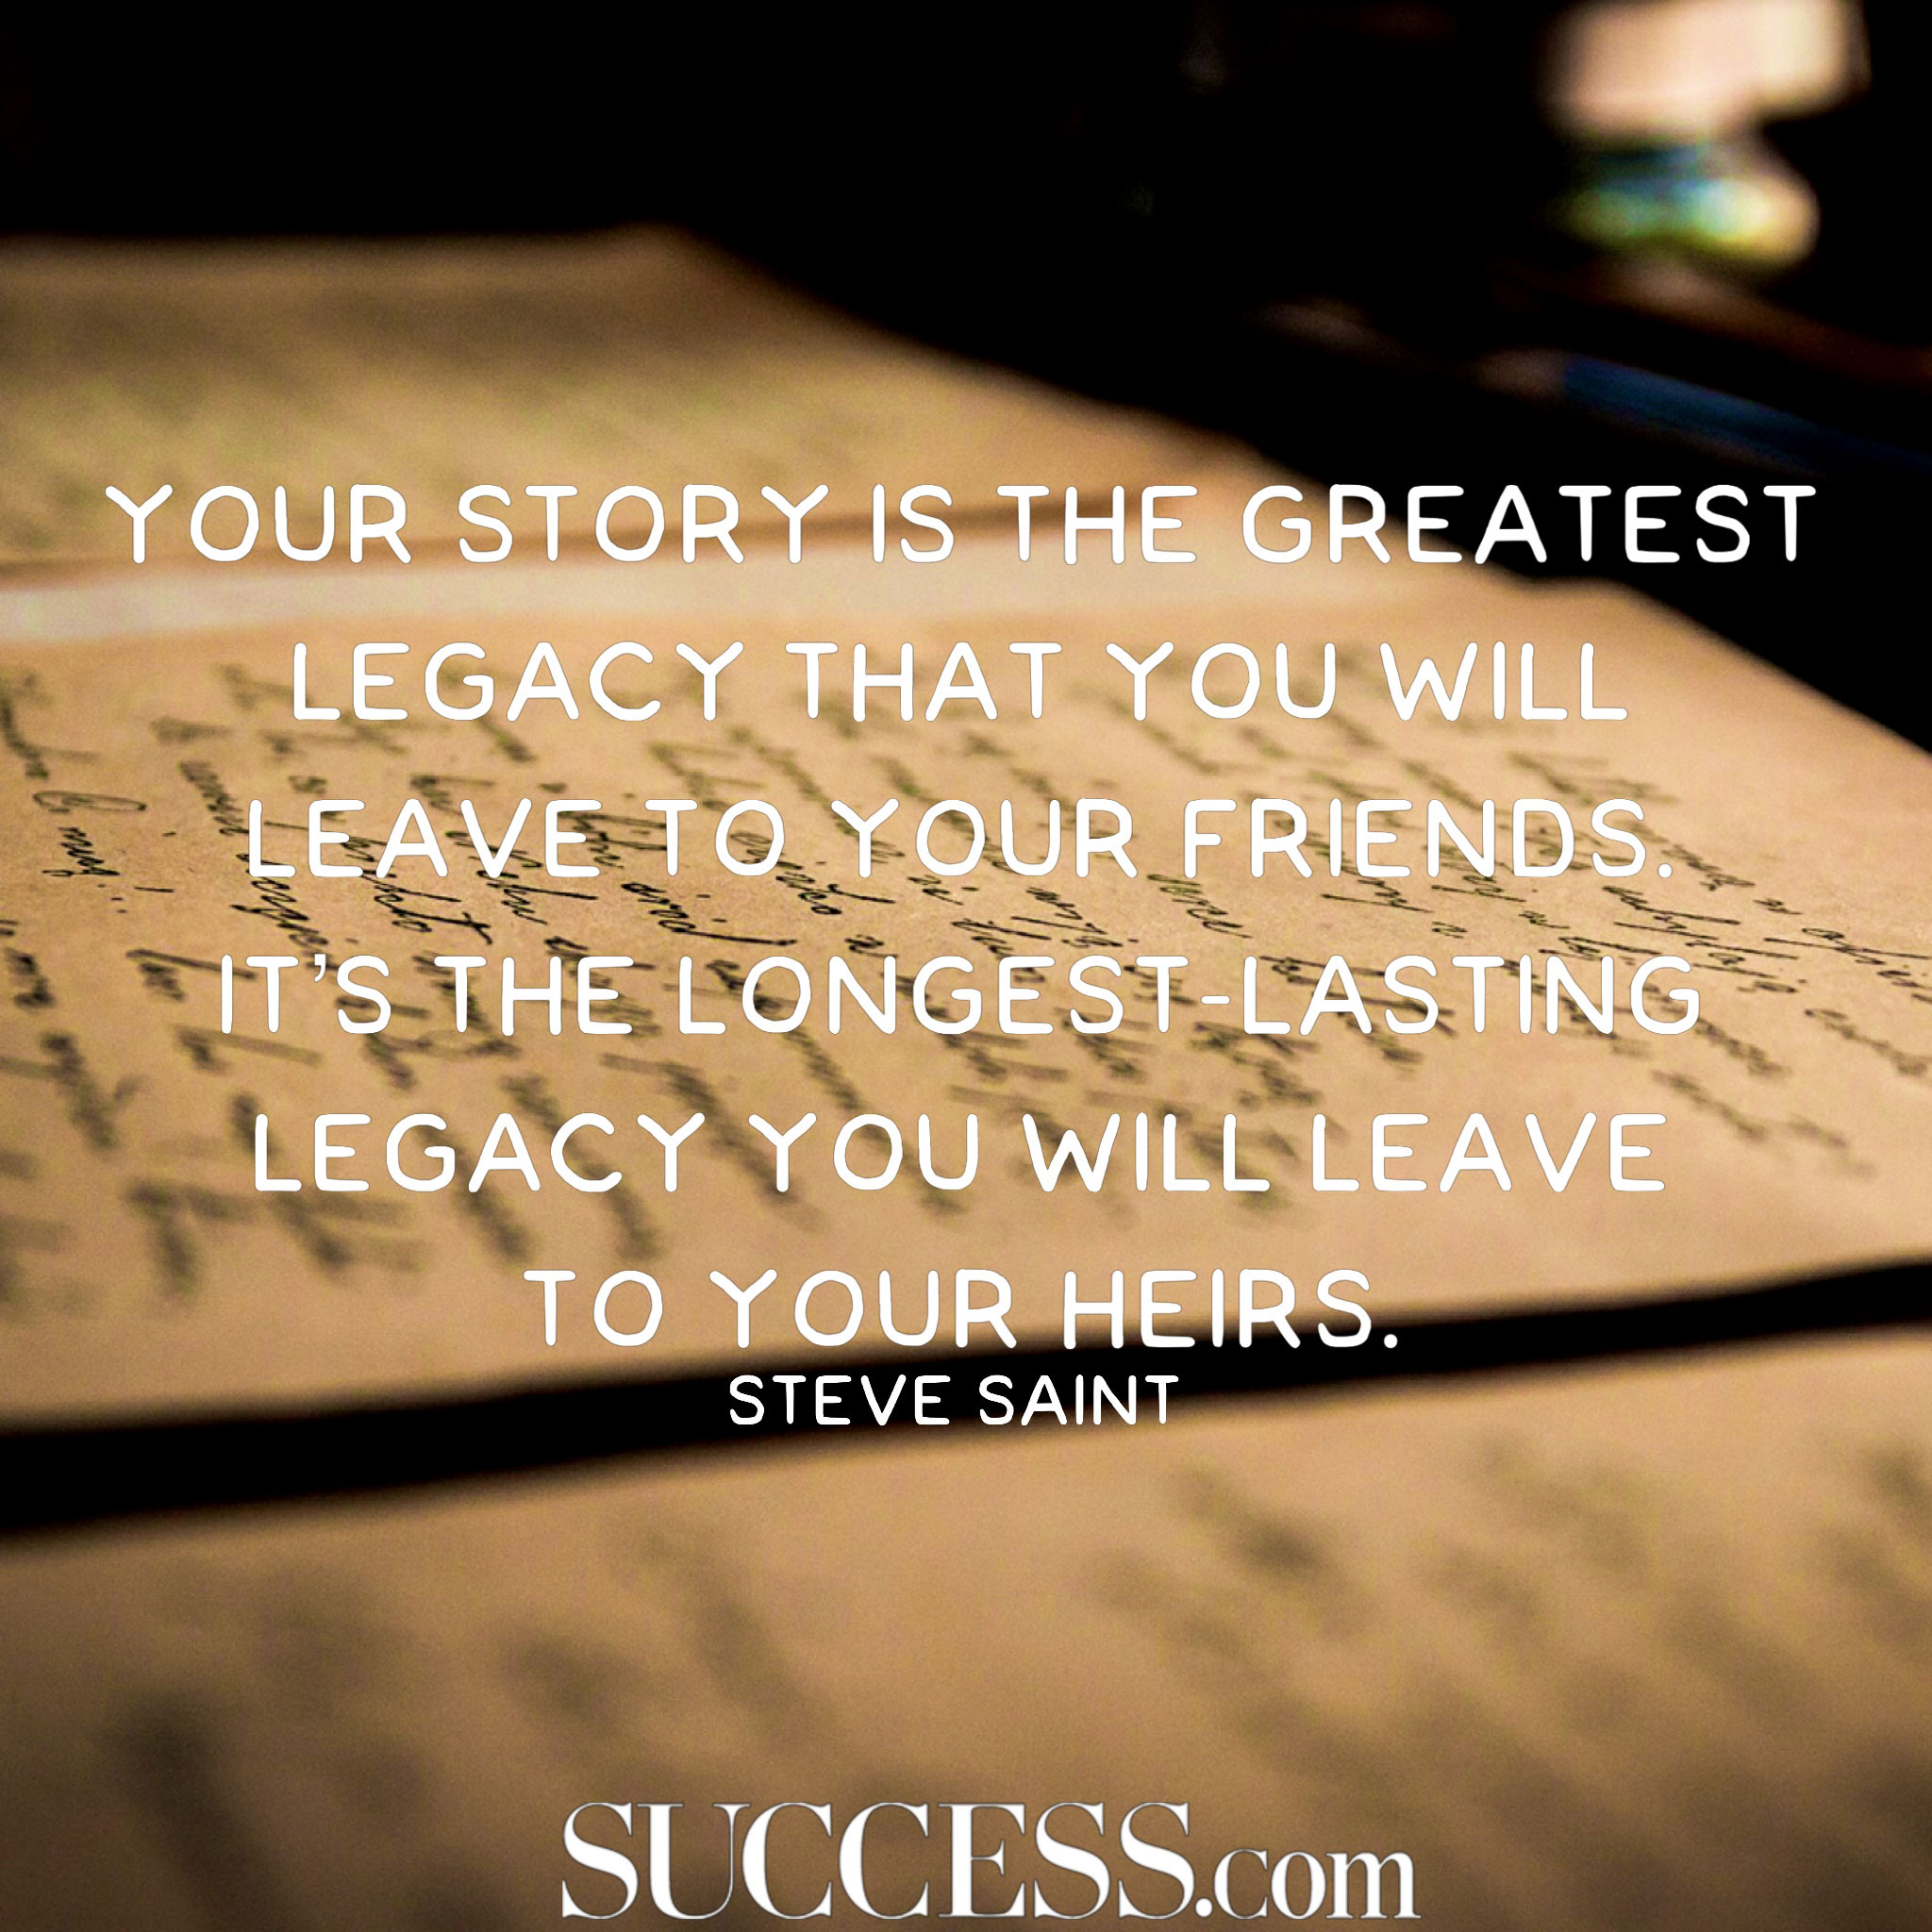 11 Quotes About Leaving a Legacy